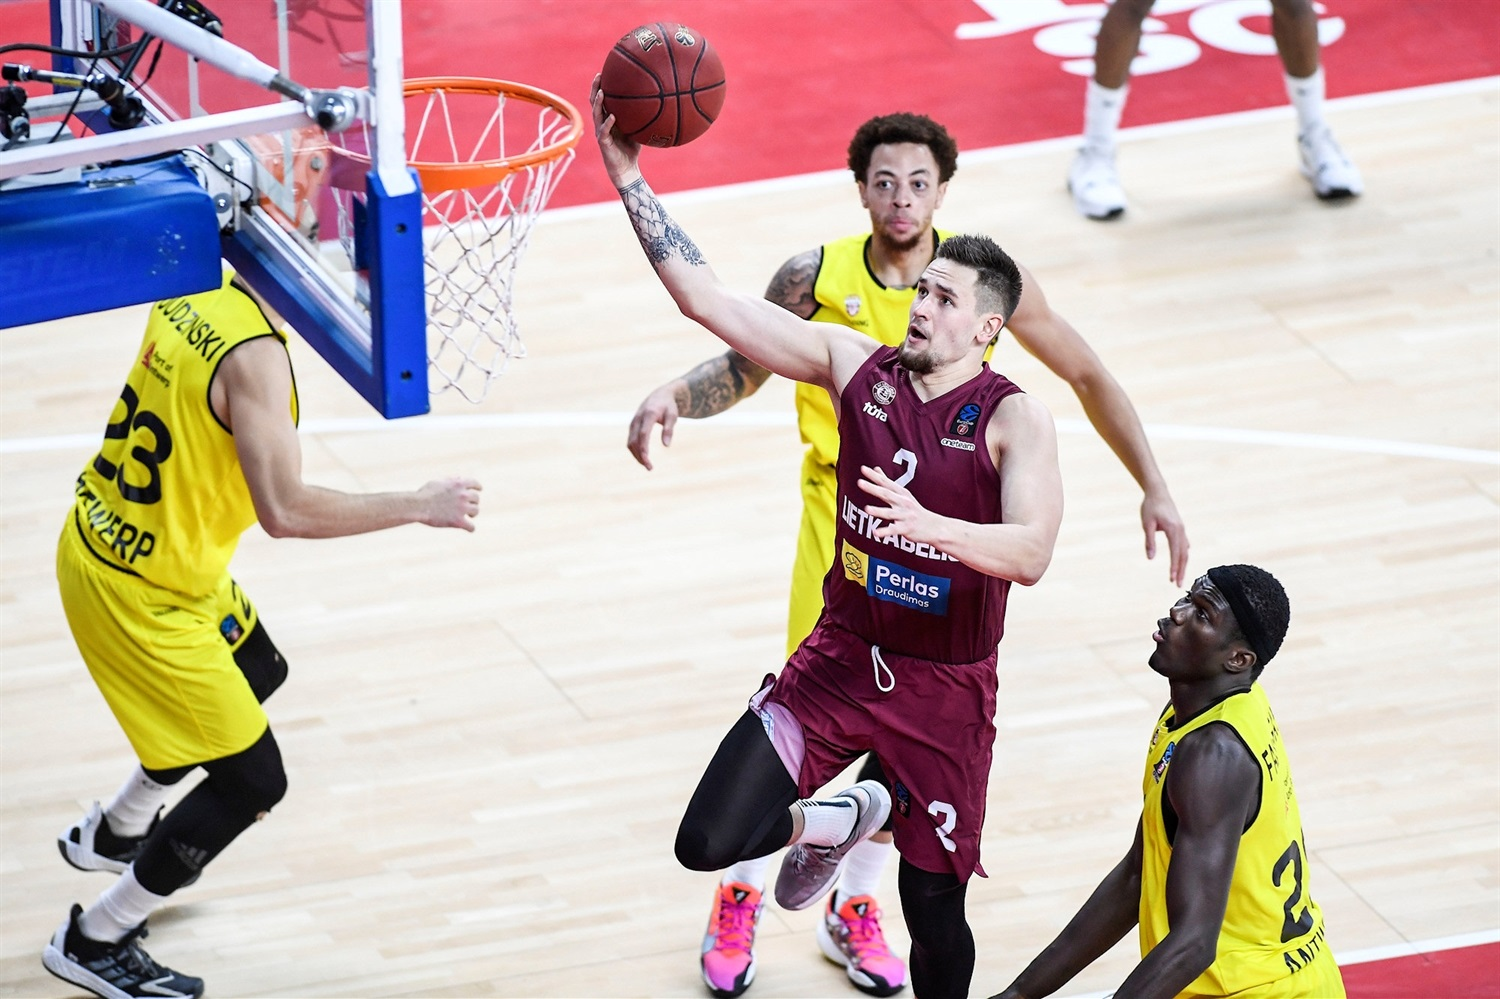 Margiris Normantas - Lietkabelis Panevezys (photo Giants - Goyvaerts - GMax Agency) - EC20